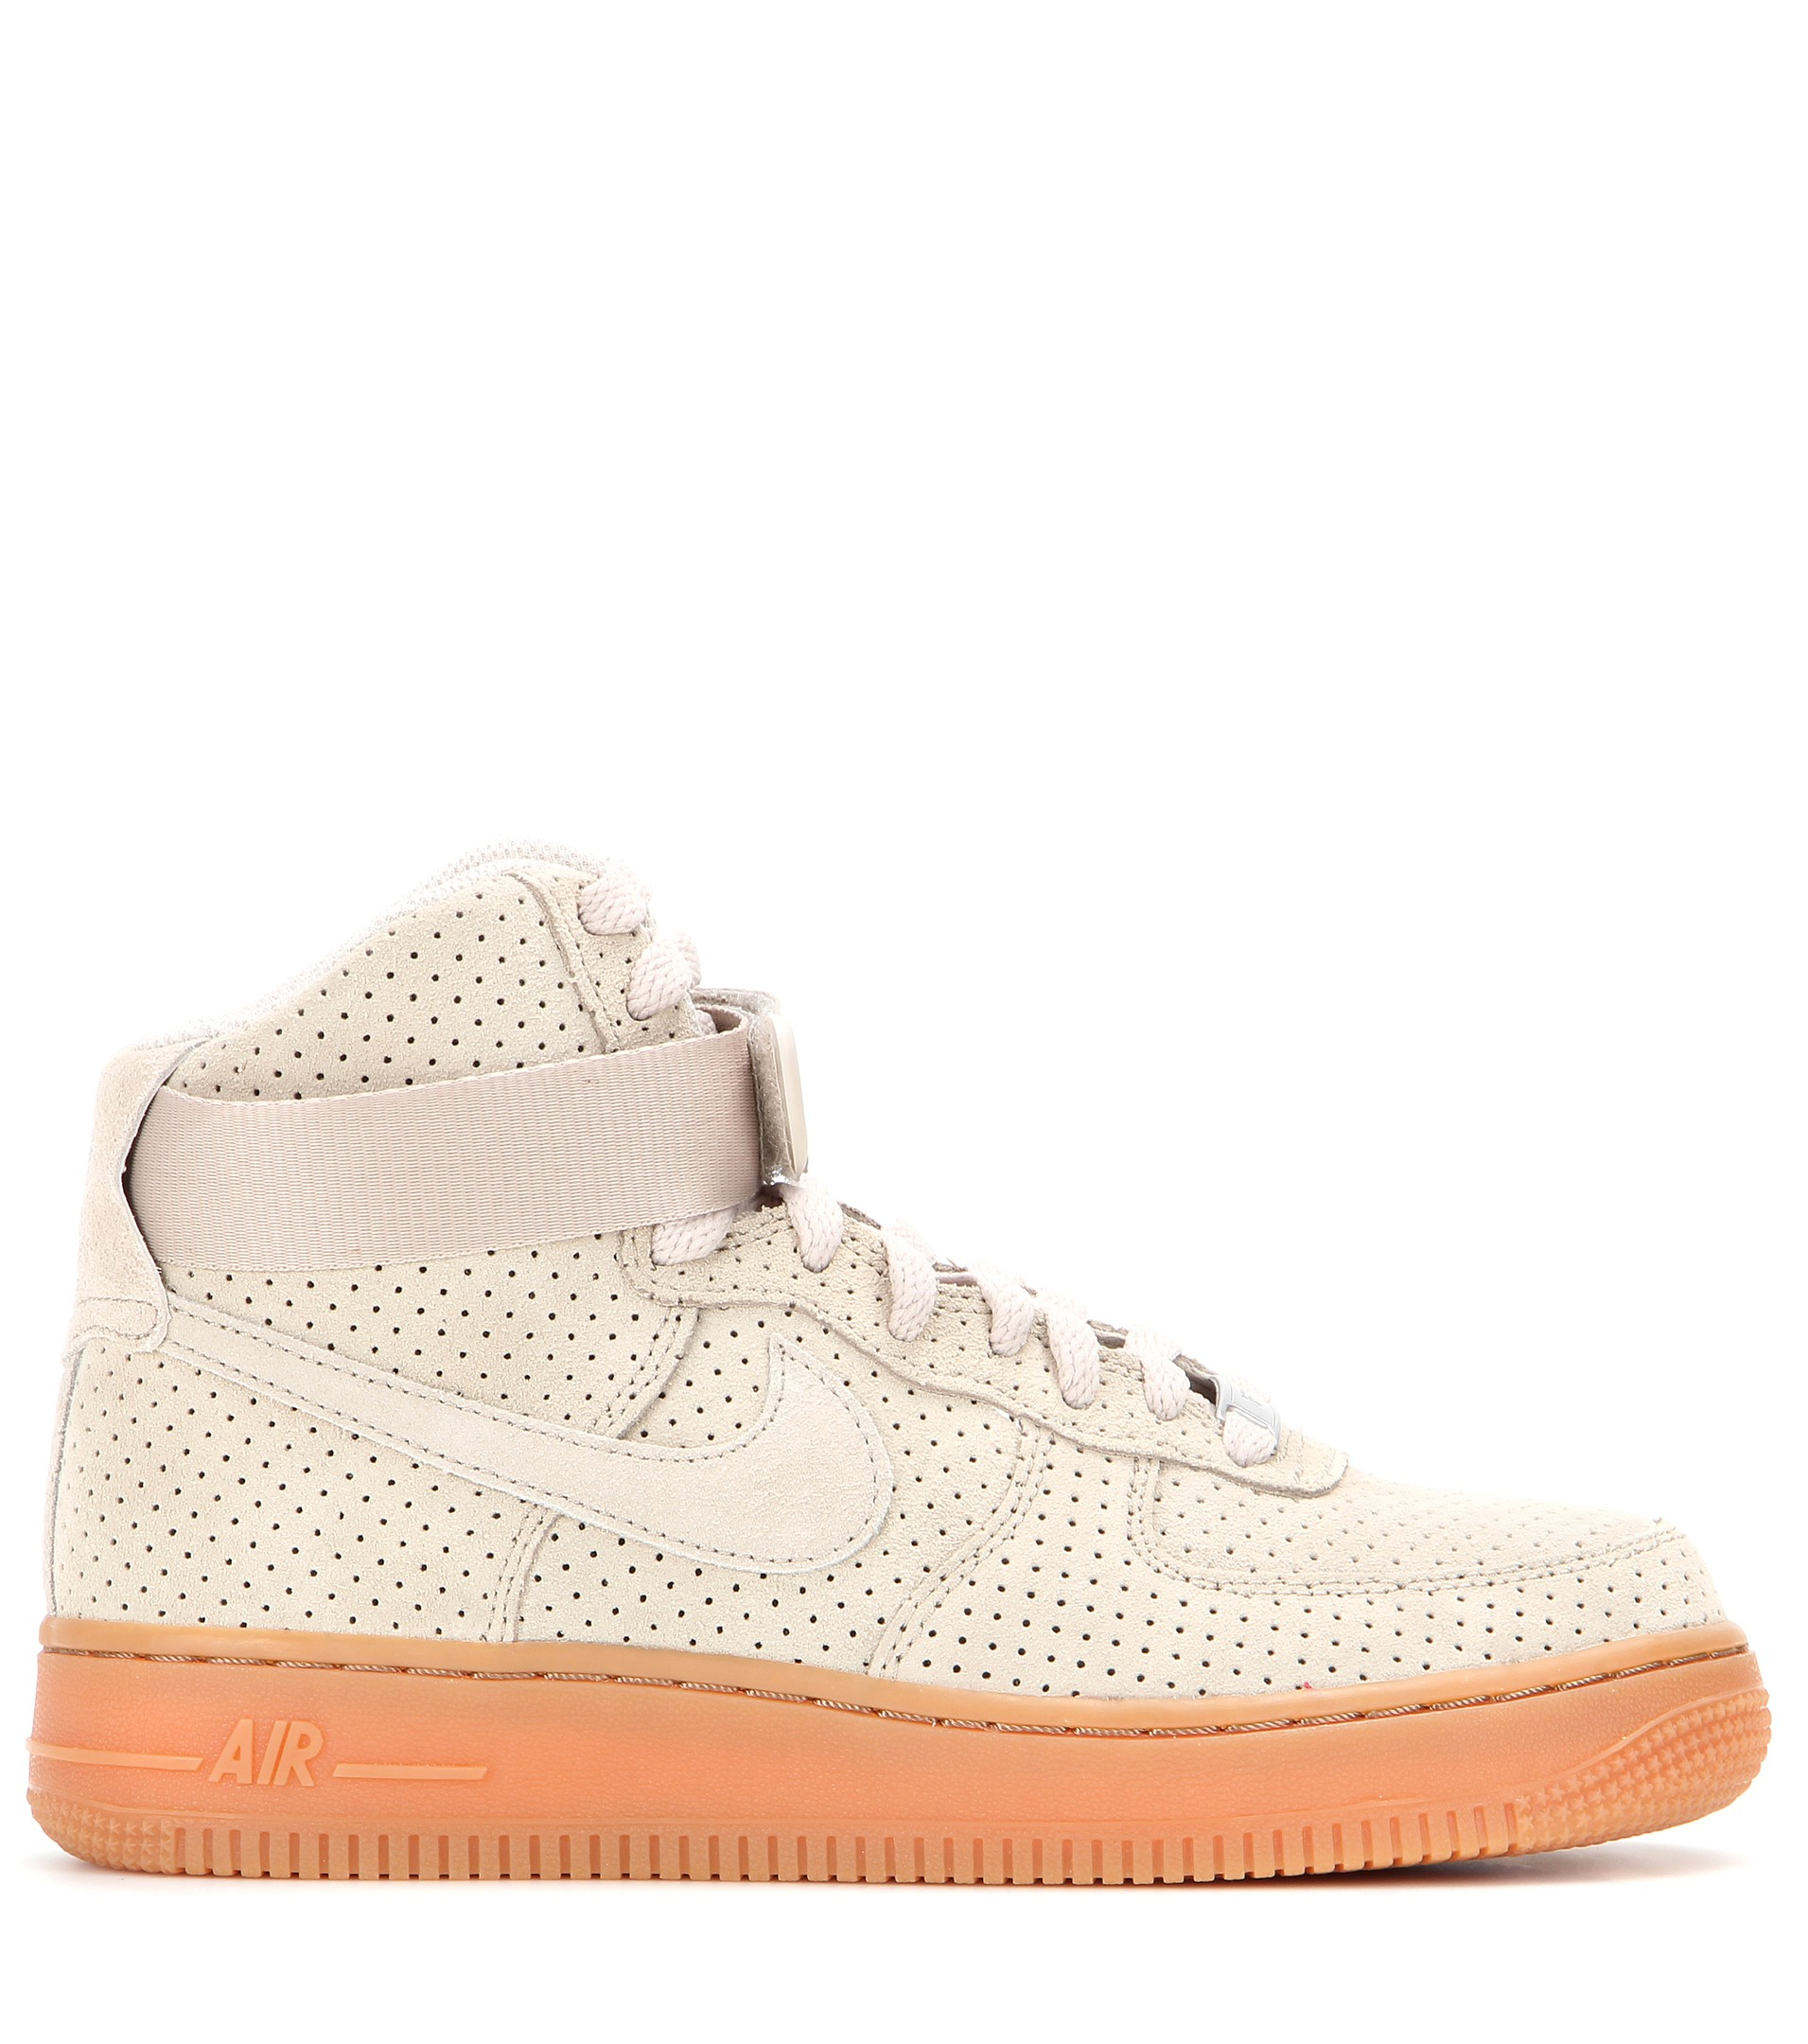 big sale 771a5 d9083 ... australia gallery. previously sold at mytheresa womens nike air force  e275e c99b6